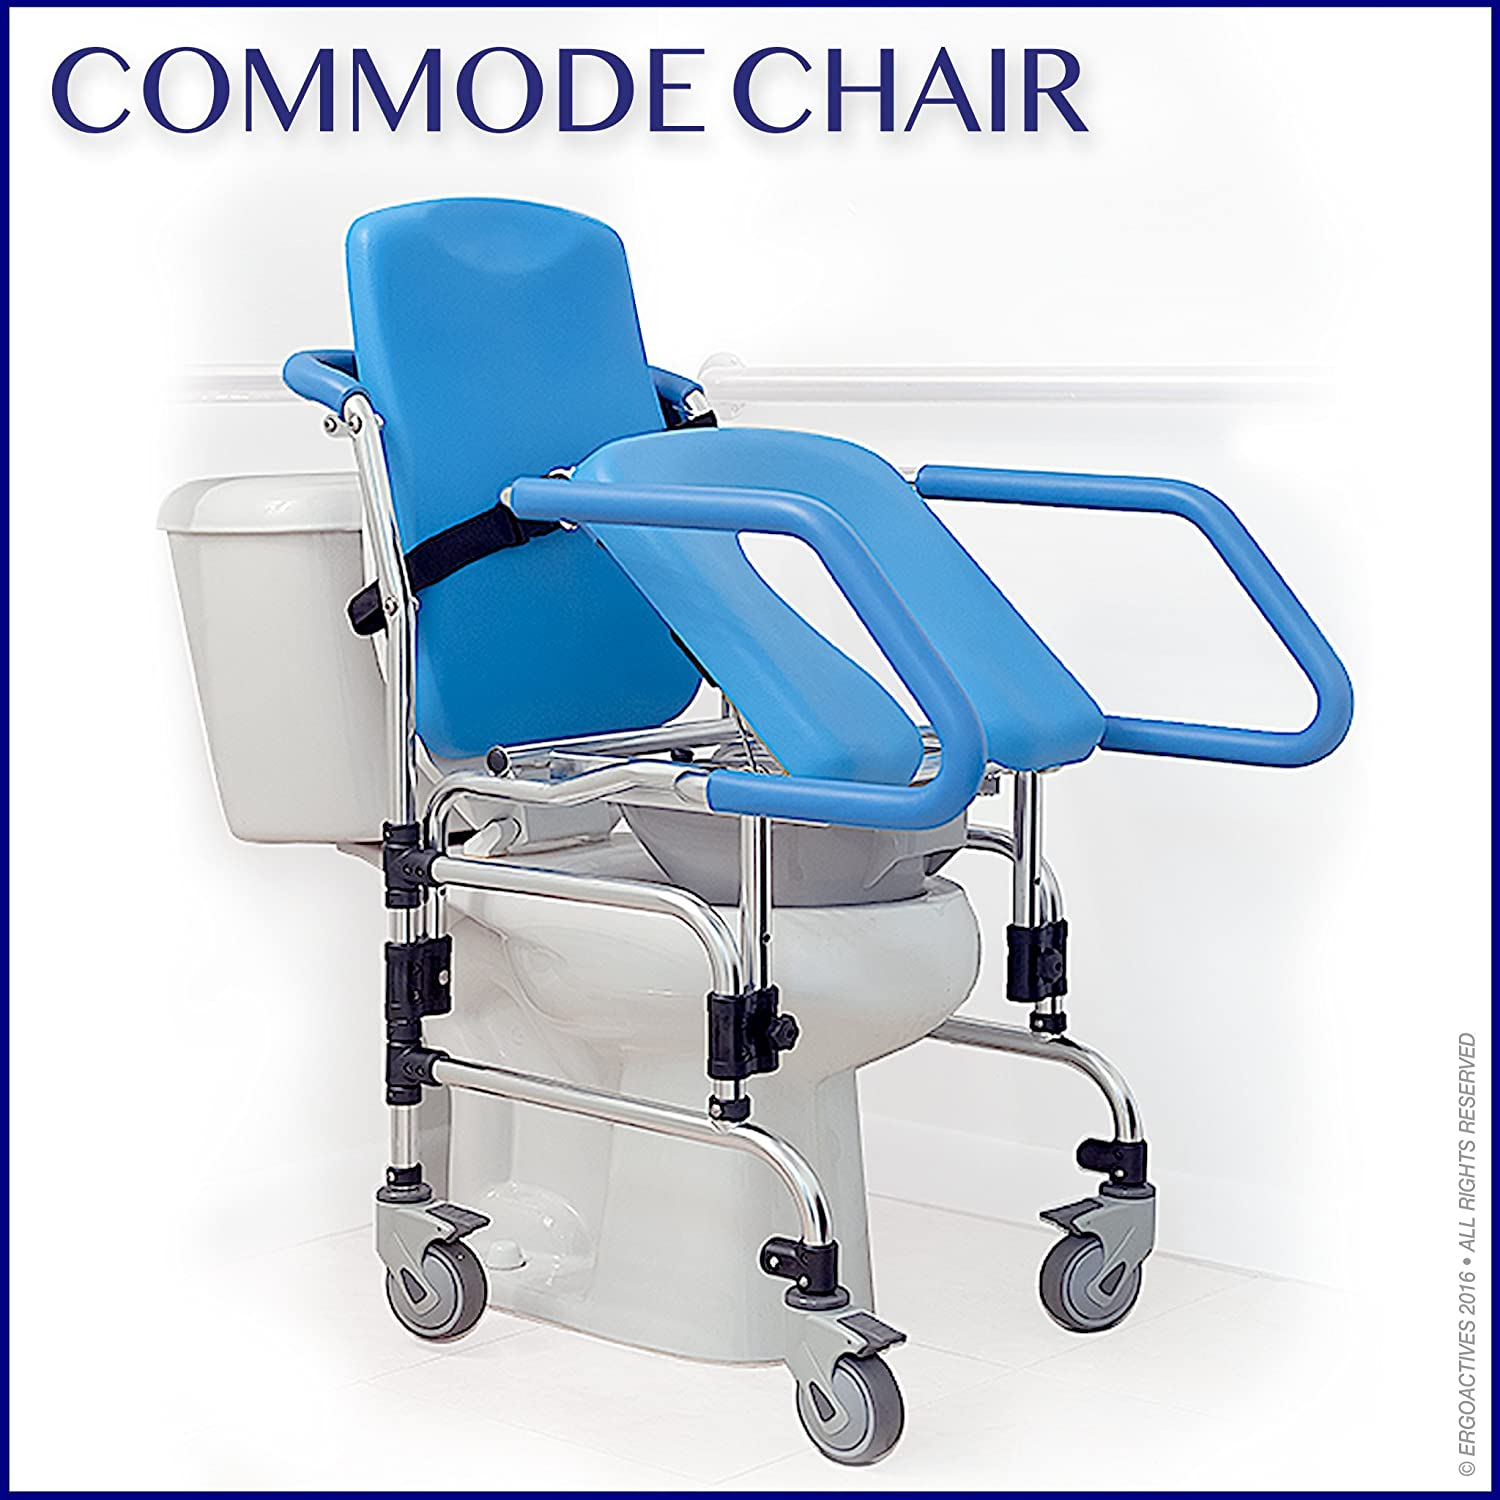 Amazon.com: Mobile Commode Chair with Assistive Seat- Helps User To ...